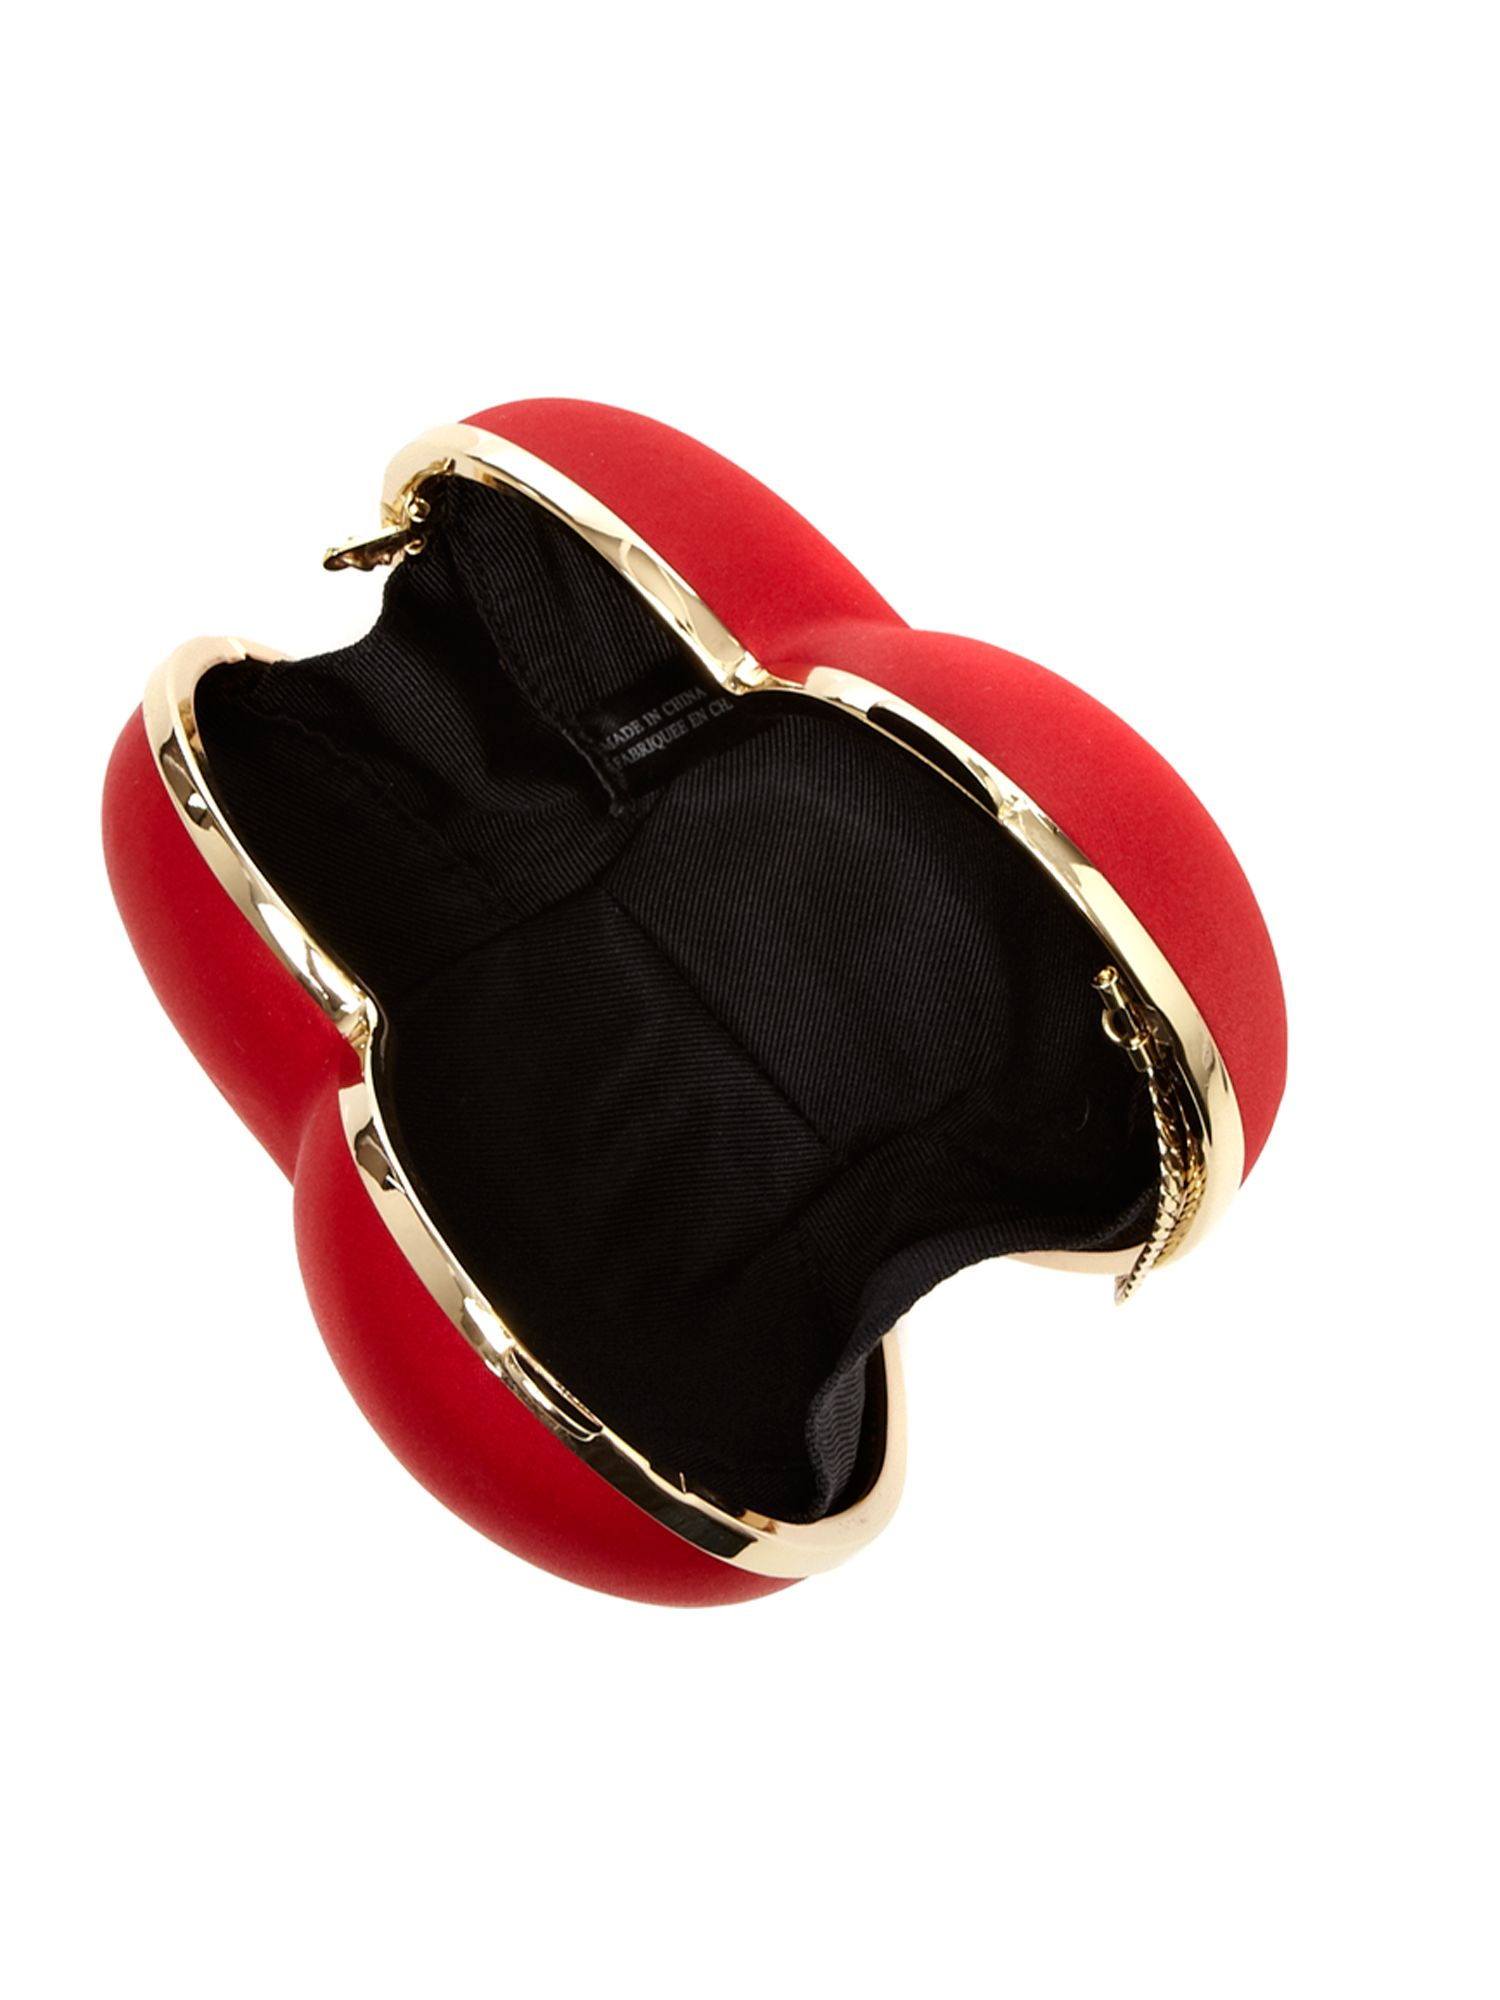 Shop red heart purse from Anya Hindmarch, Dolce & Gabbana, Gucci and from Farfetch, Forzieri, Italist and many more. Find thousands of new high fashion items in one place.